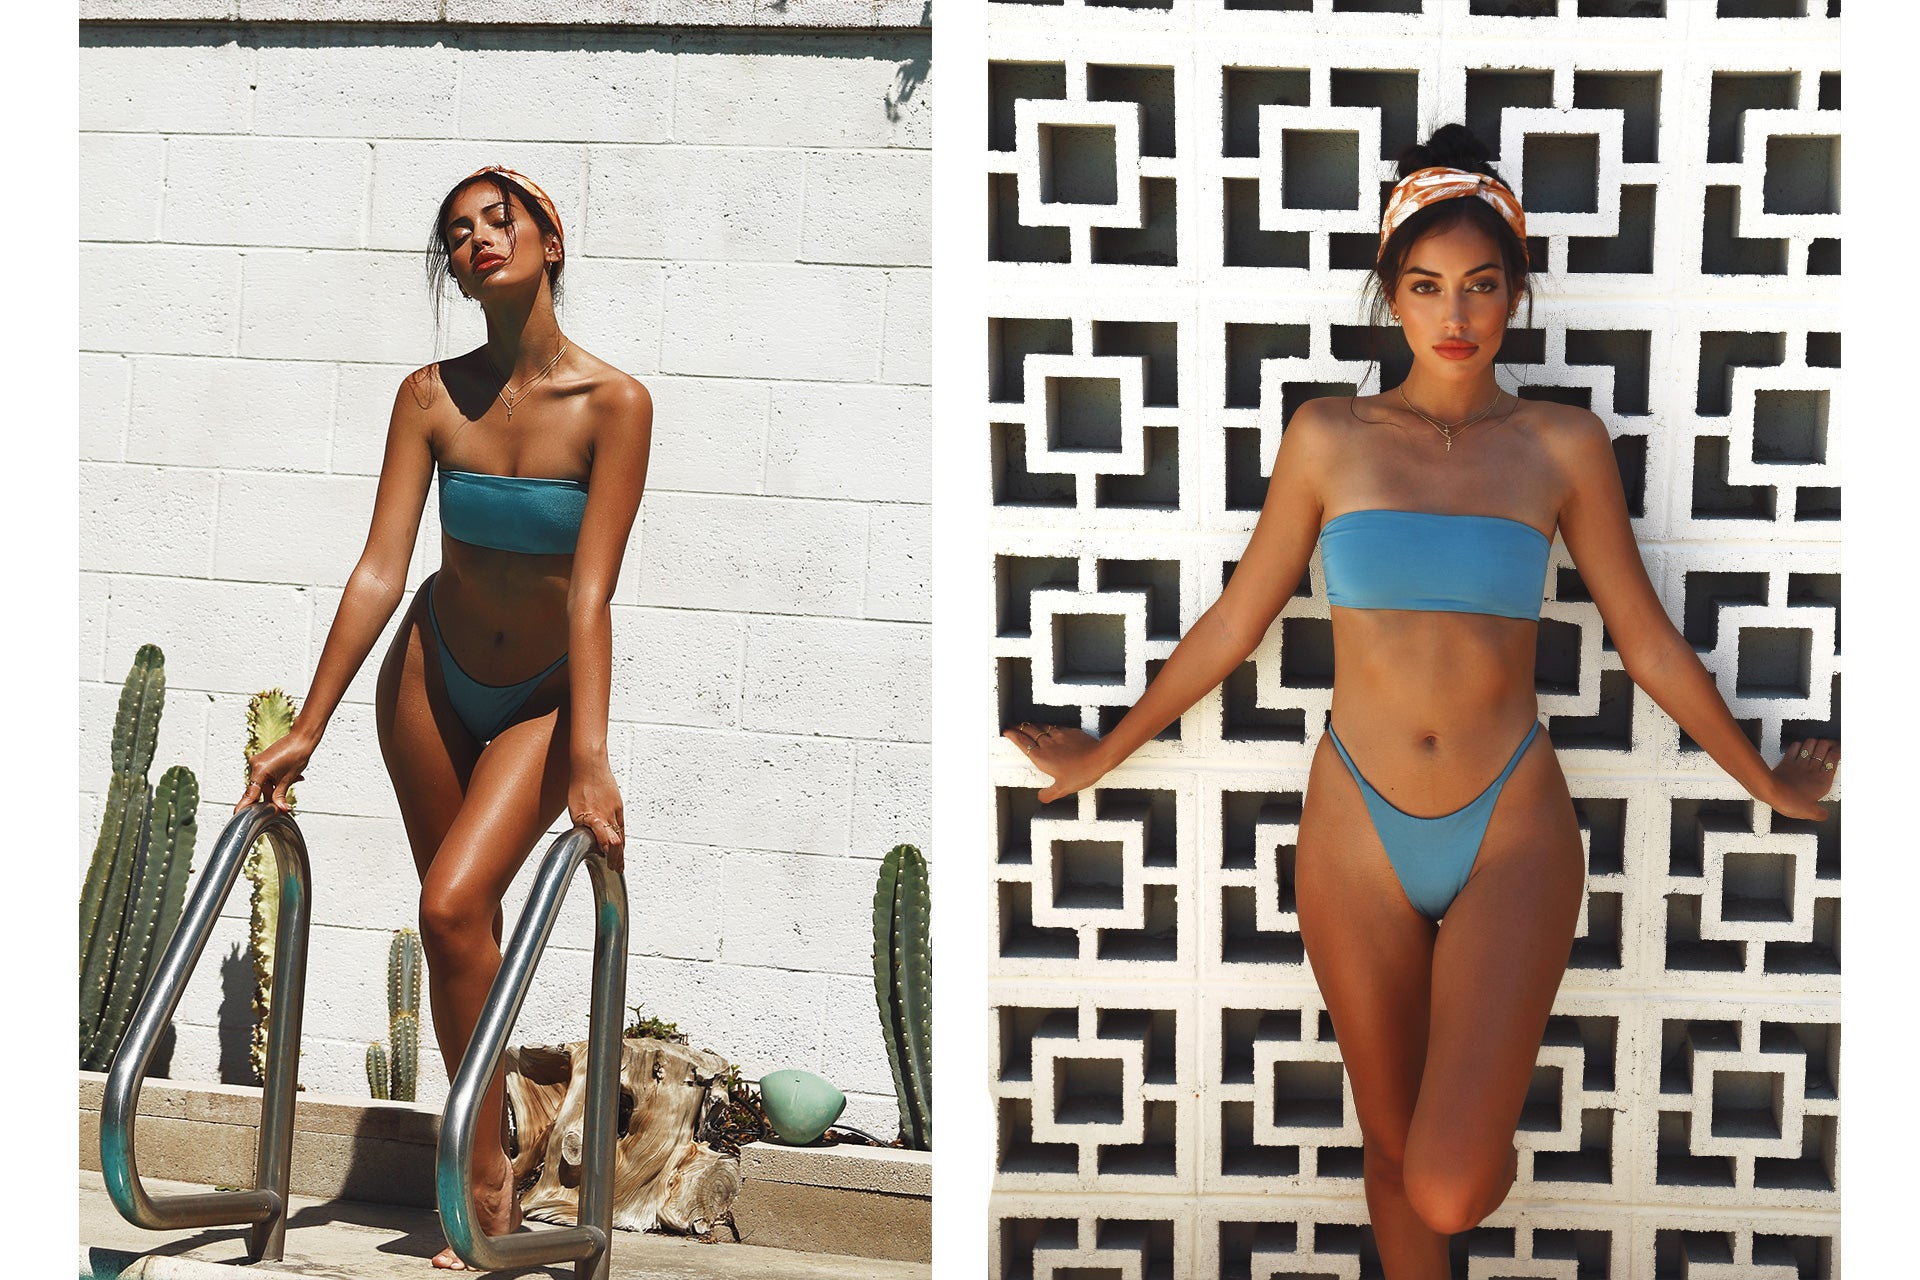 Cindy Kimberly wearing the Delight So Chic Blue Lagoon Bandeau Bikini Set while standing by a pool